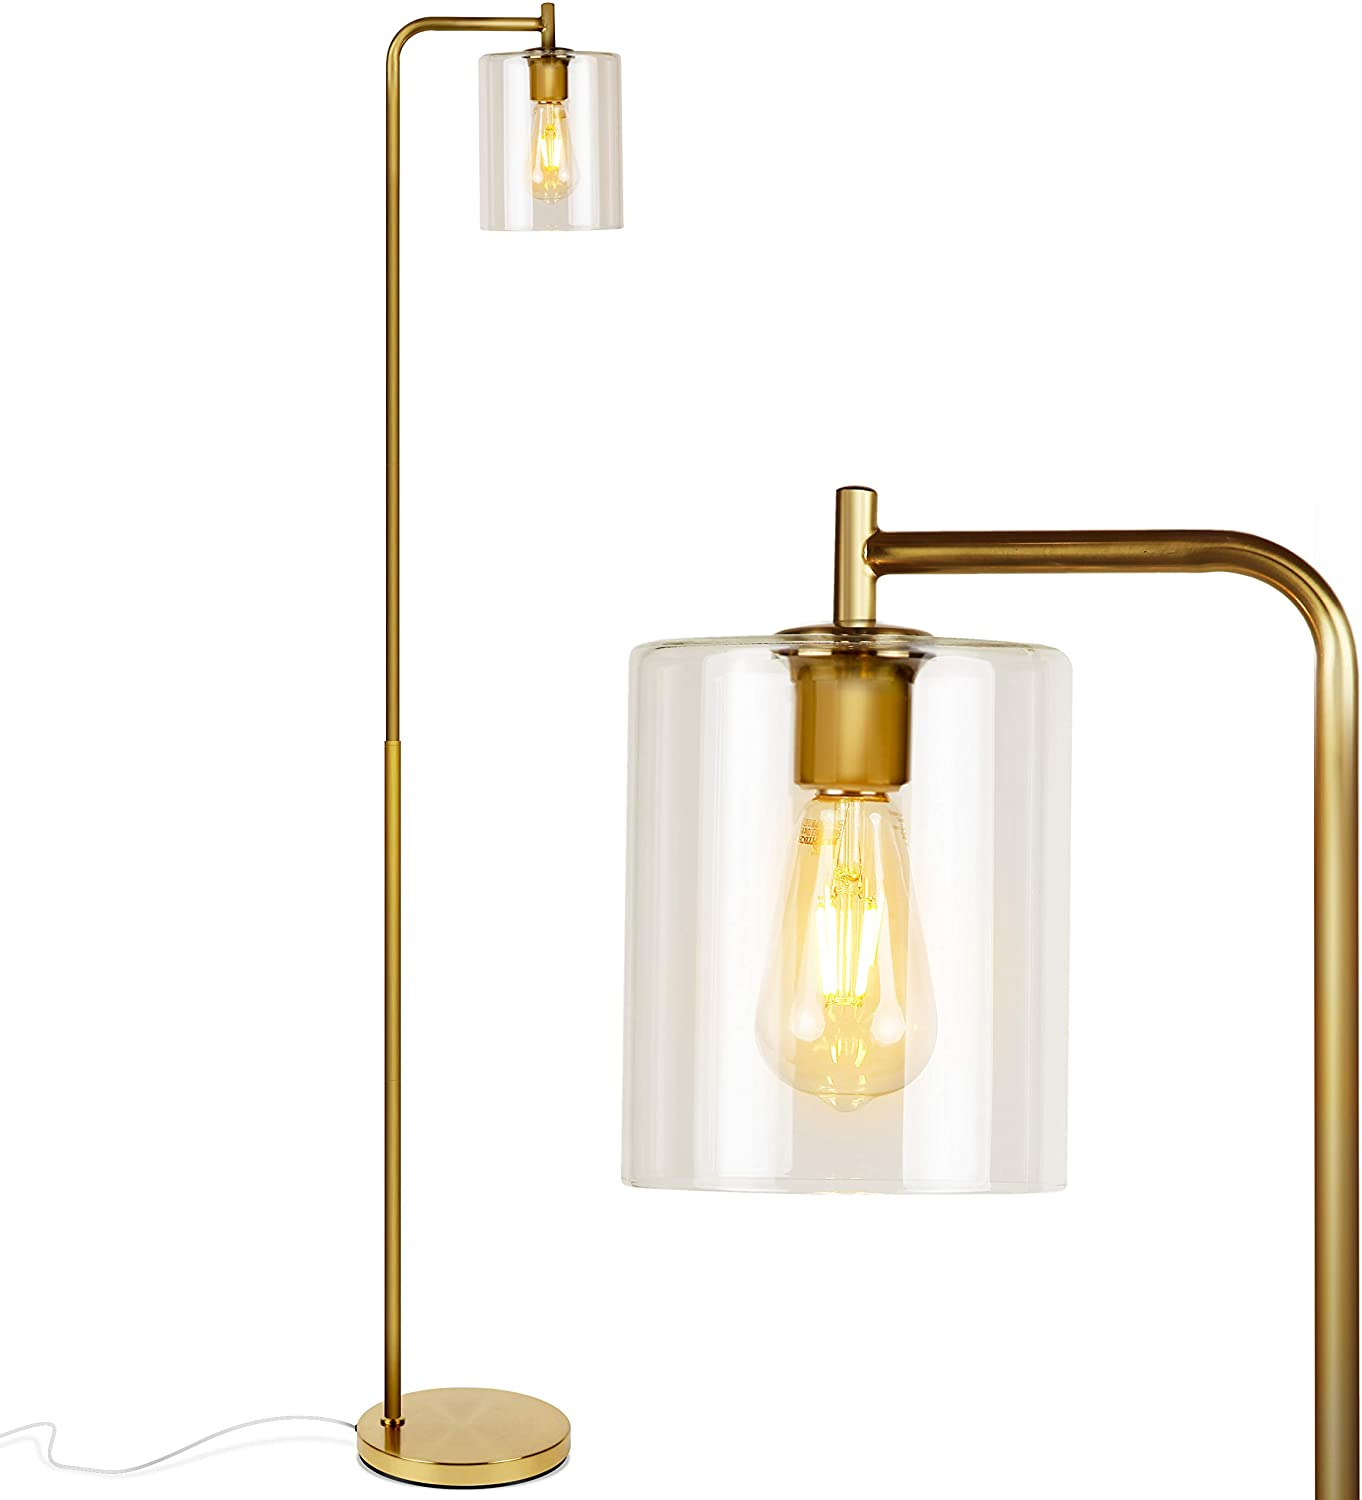 Brightech Elizabeth Industrial Floor Large discharge Max 79% OFF sale Lamp Shade Edi Glass with